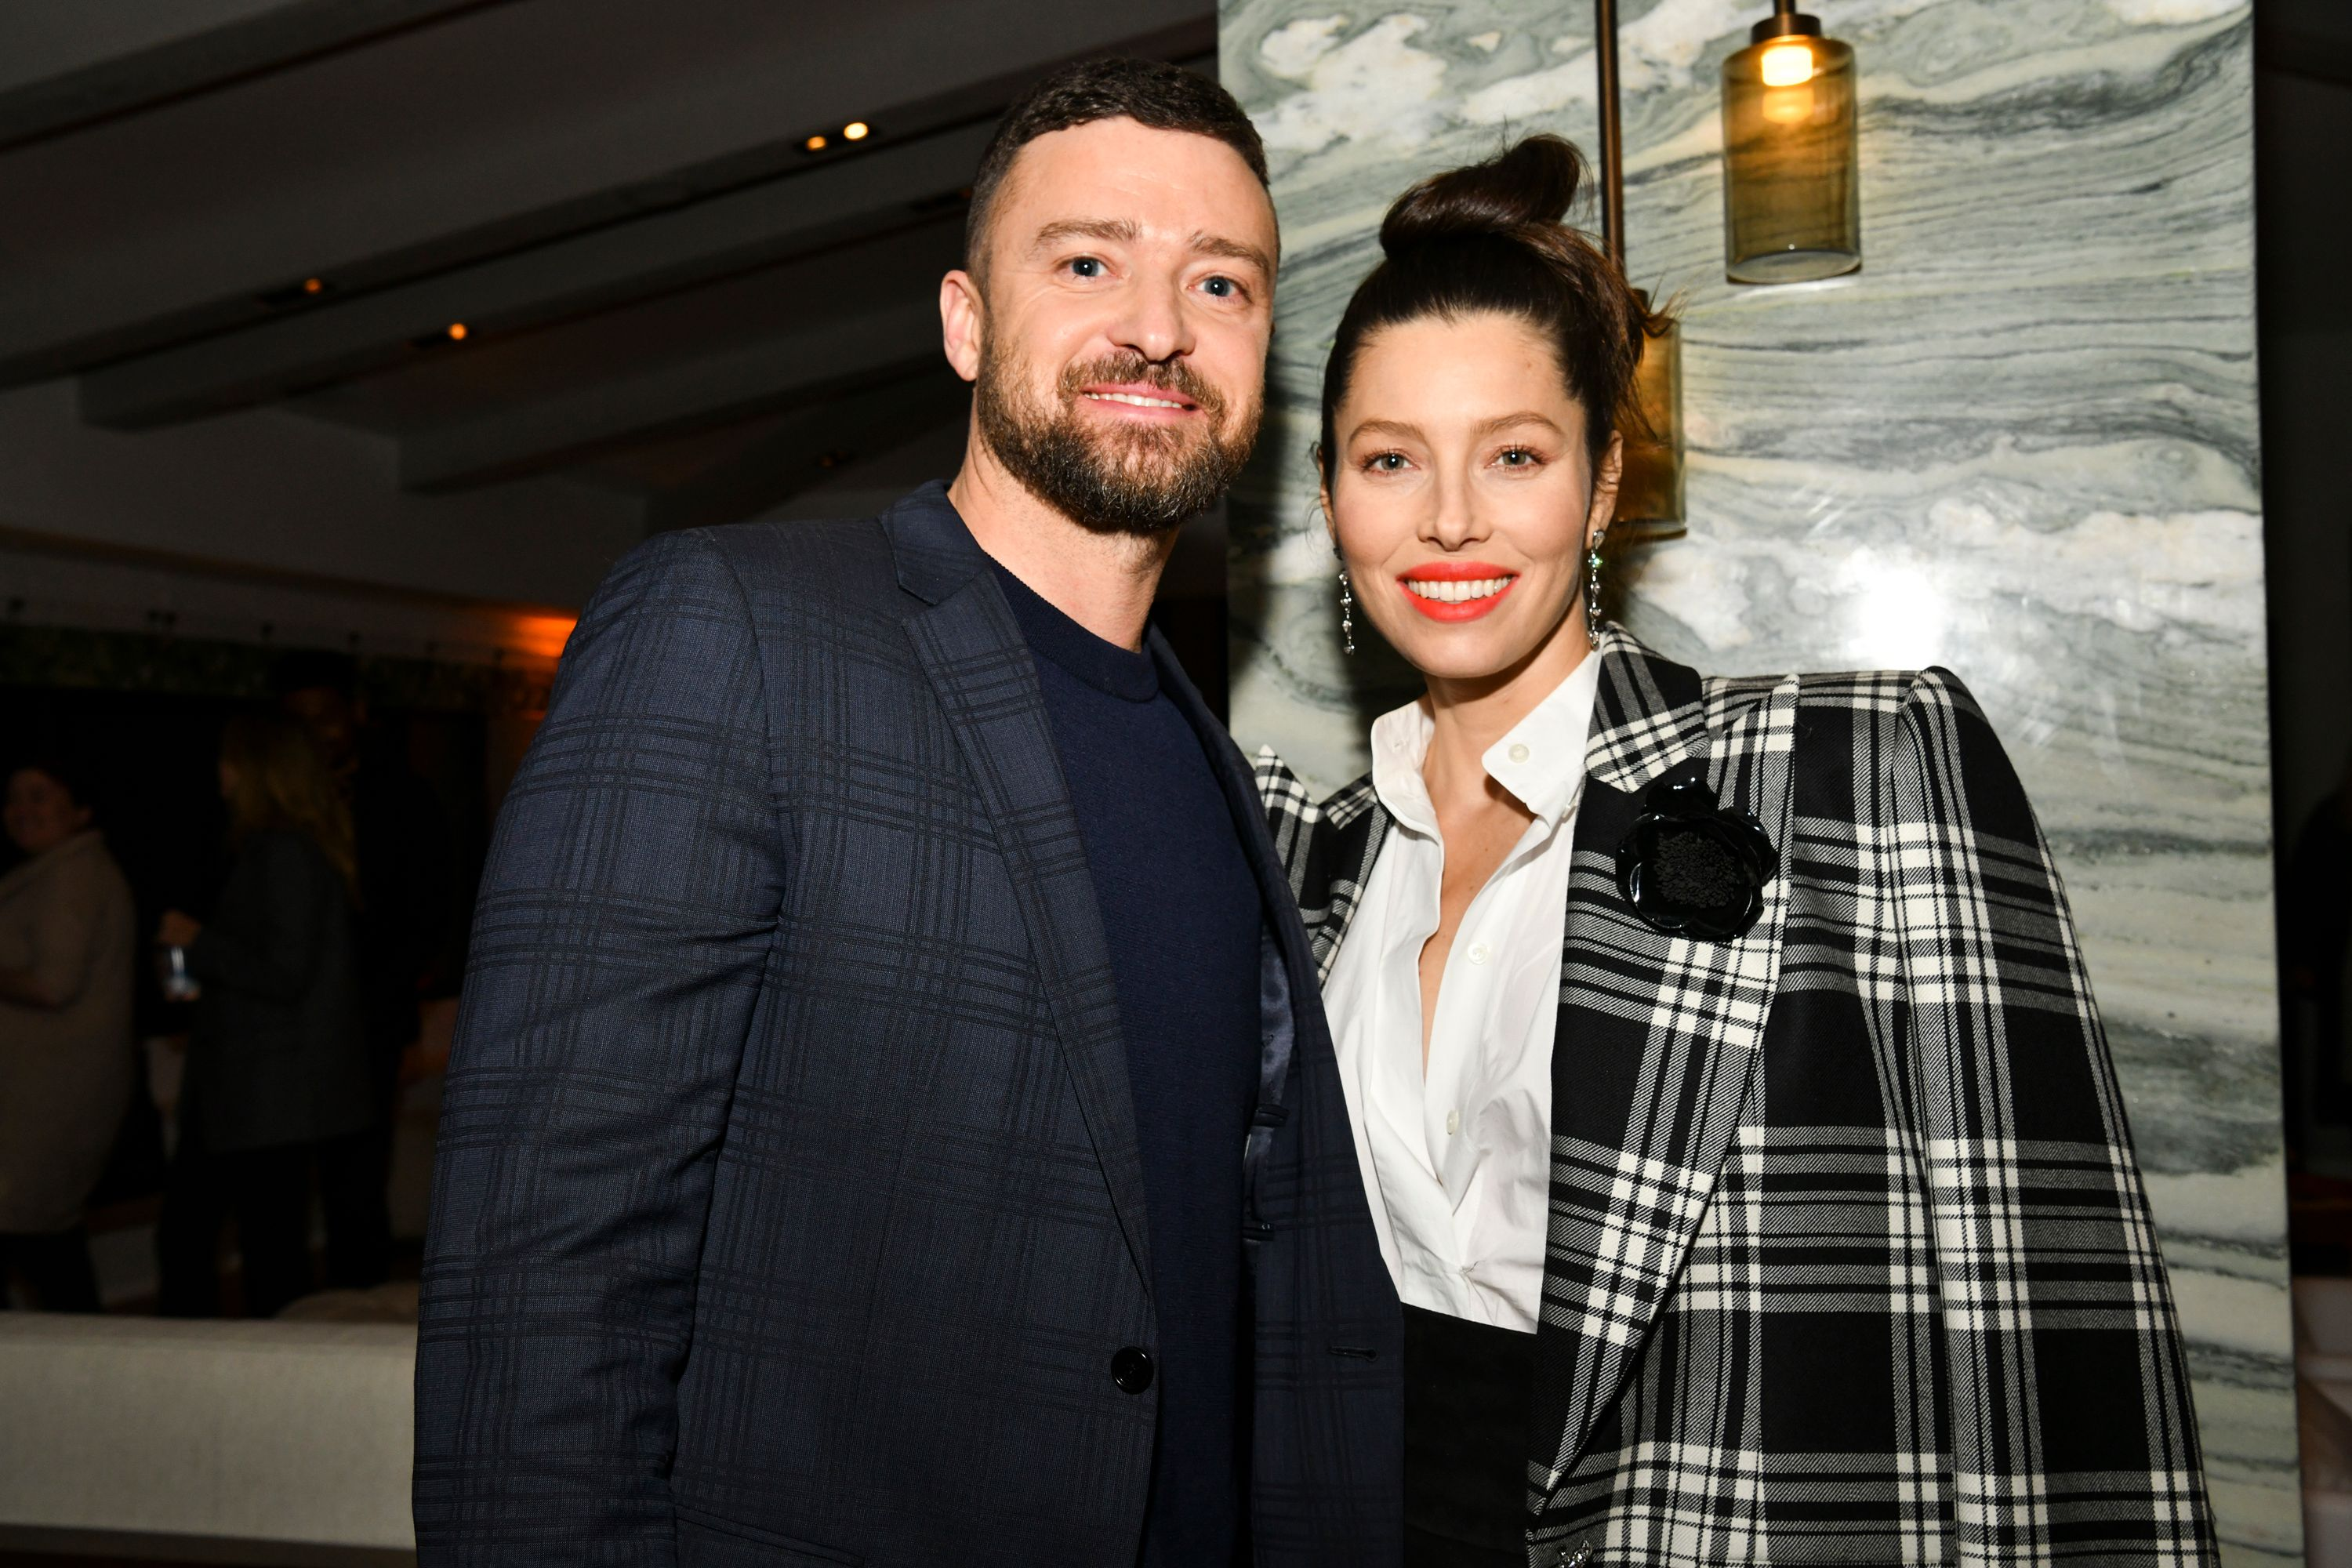 Justin Timberlake Opens Up About Marriage With Jessica Biel Being Unable To Erase The Past